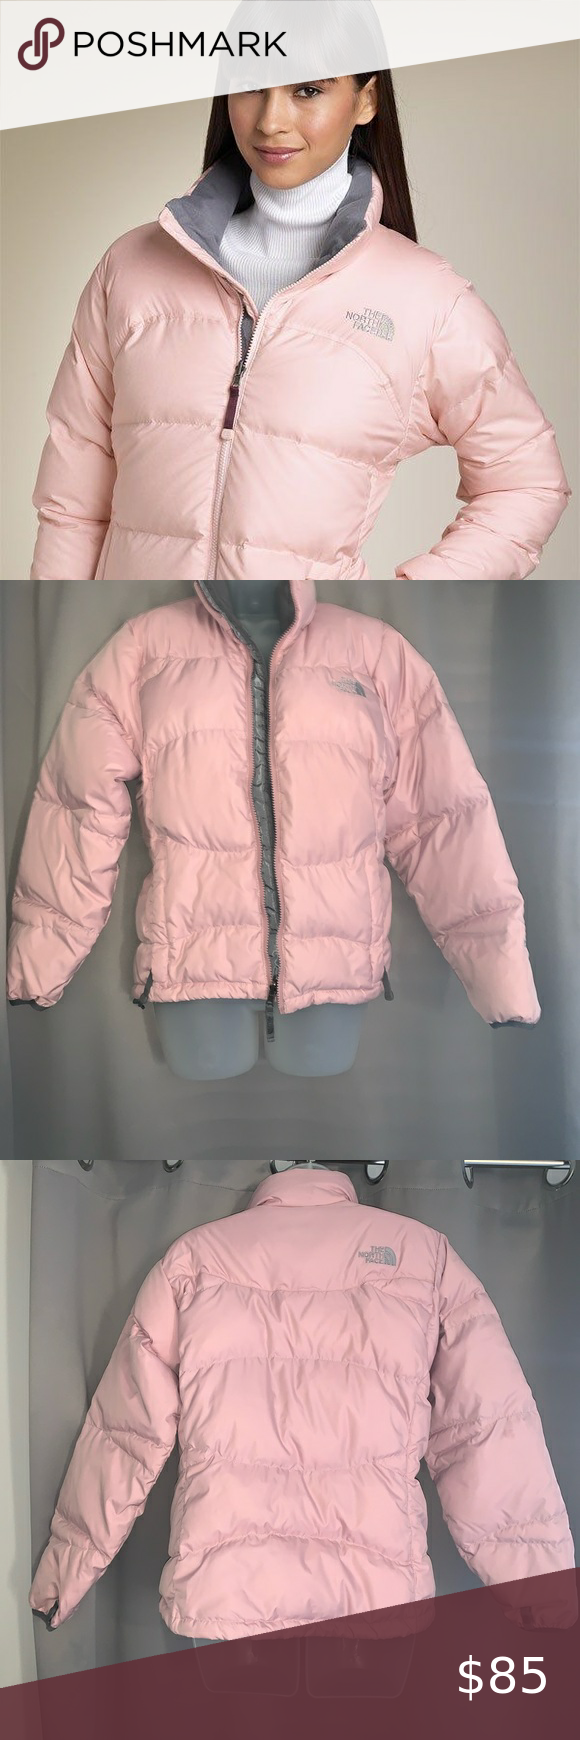 The North Face Puffer Jacket North Face Puffer Jacket The North Face Puffer Jacket North Face Puffer [ 1740 x 580 Pixel ]